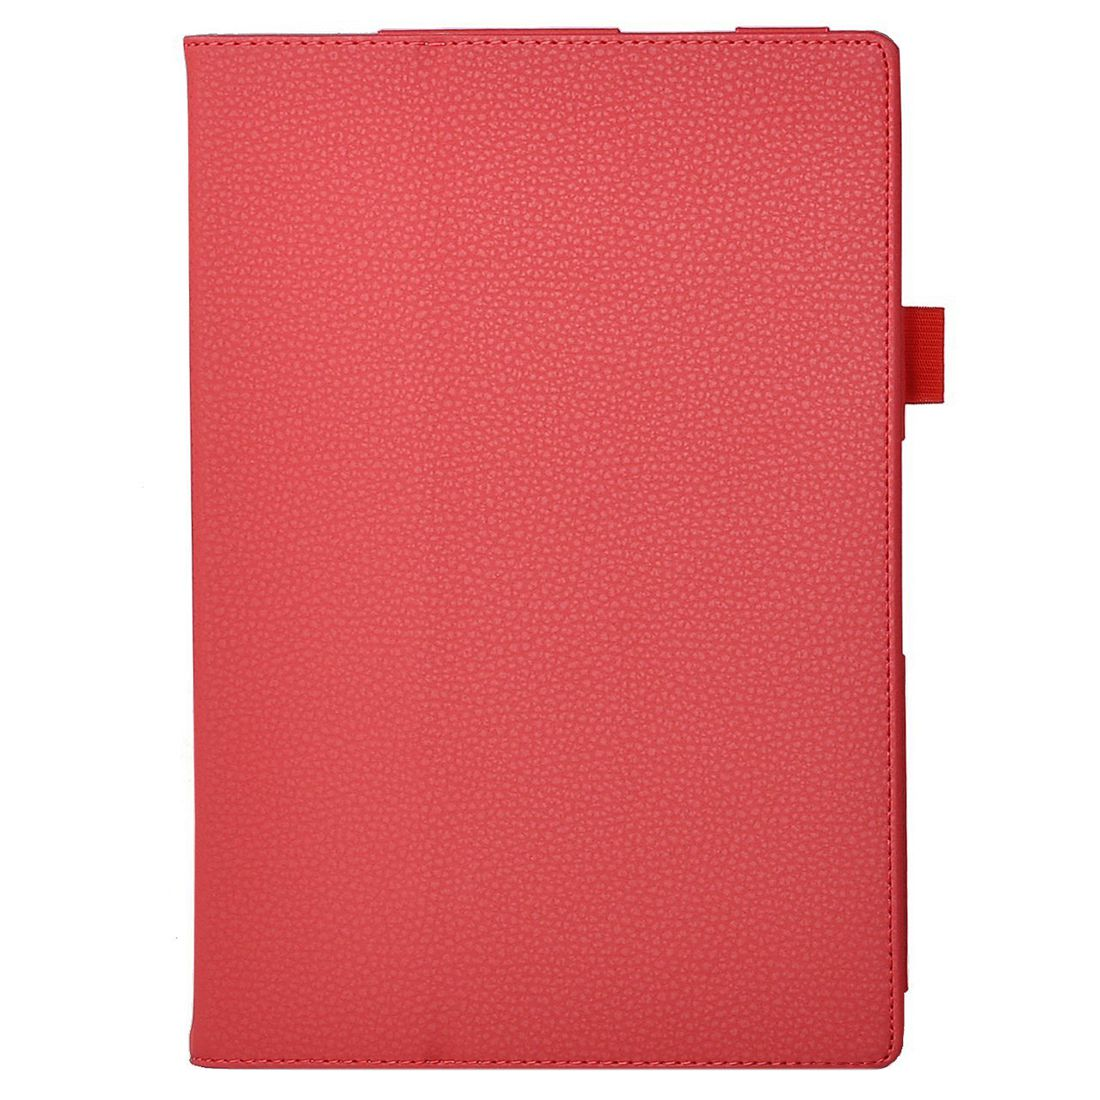 Red Tablet Case for Acer Iconia One 10 B3-A10 10.1 inches планшет acer switch one 10 z8300 532gb